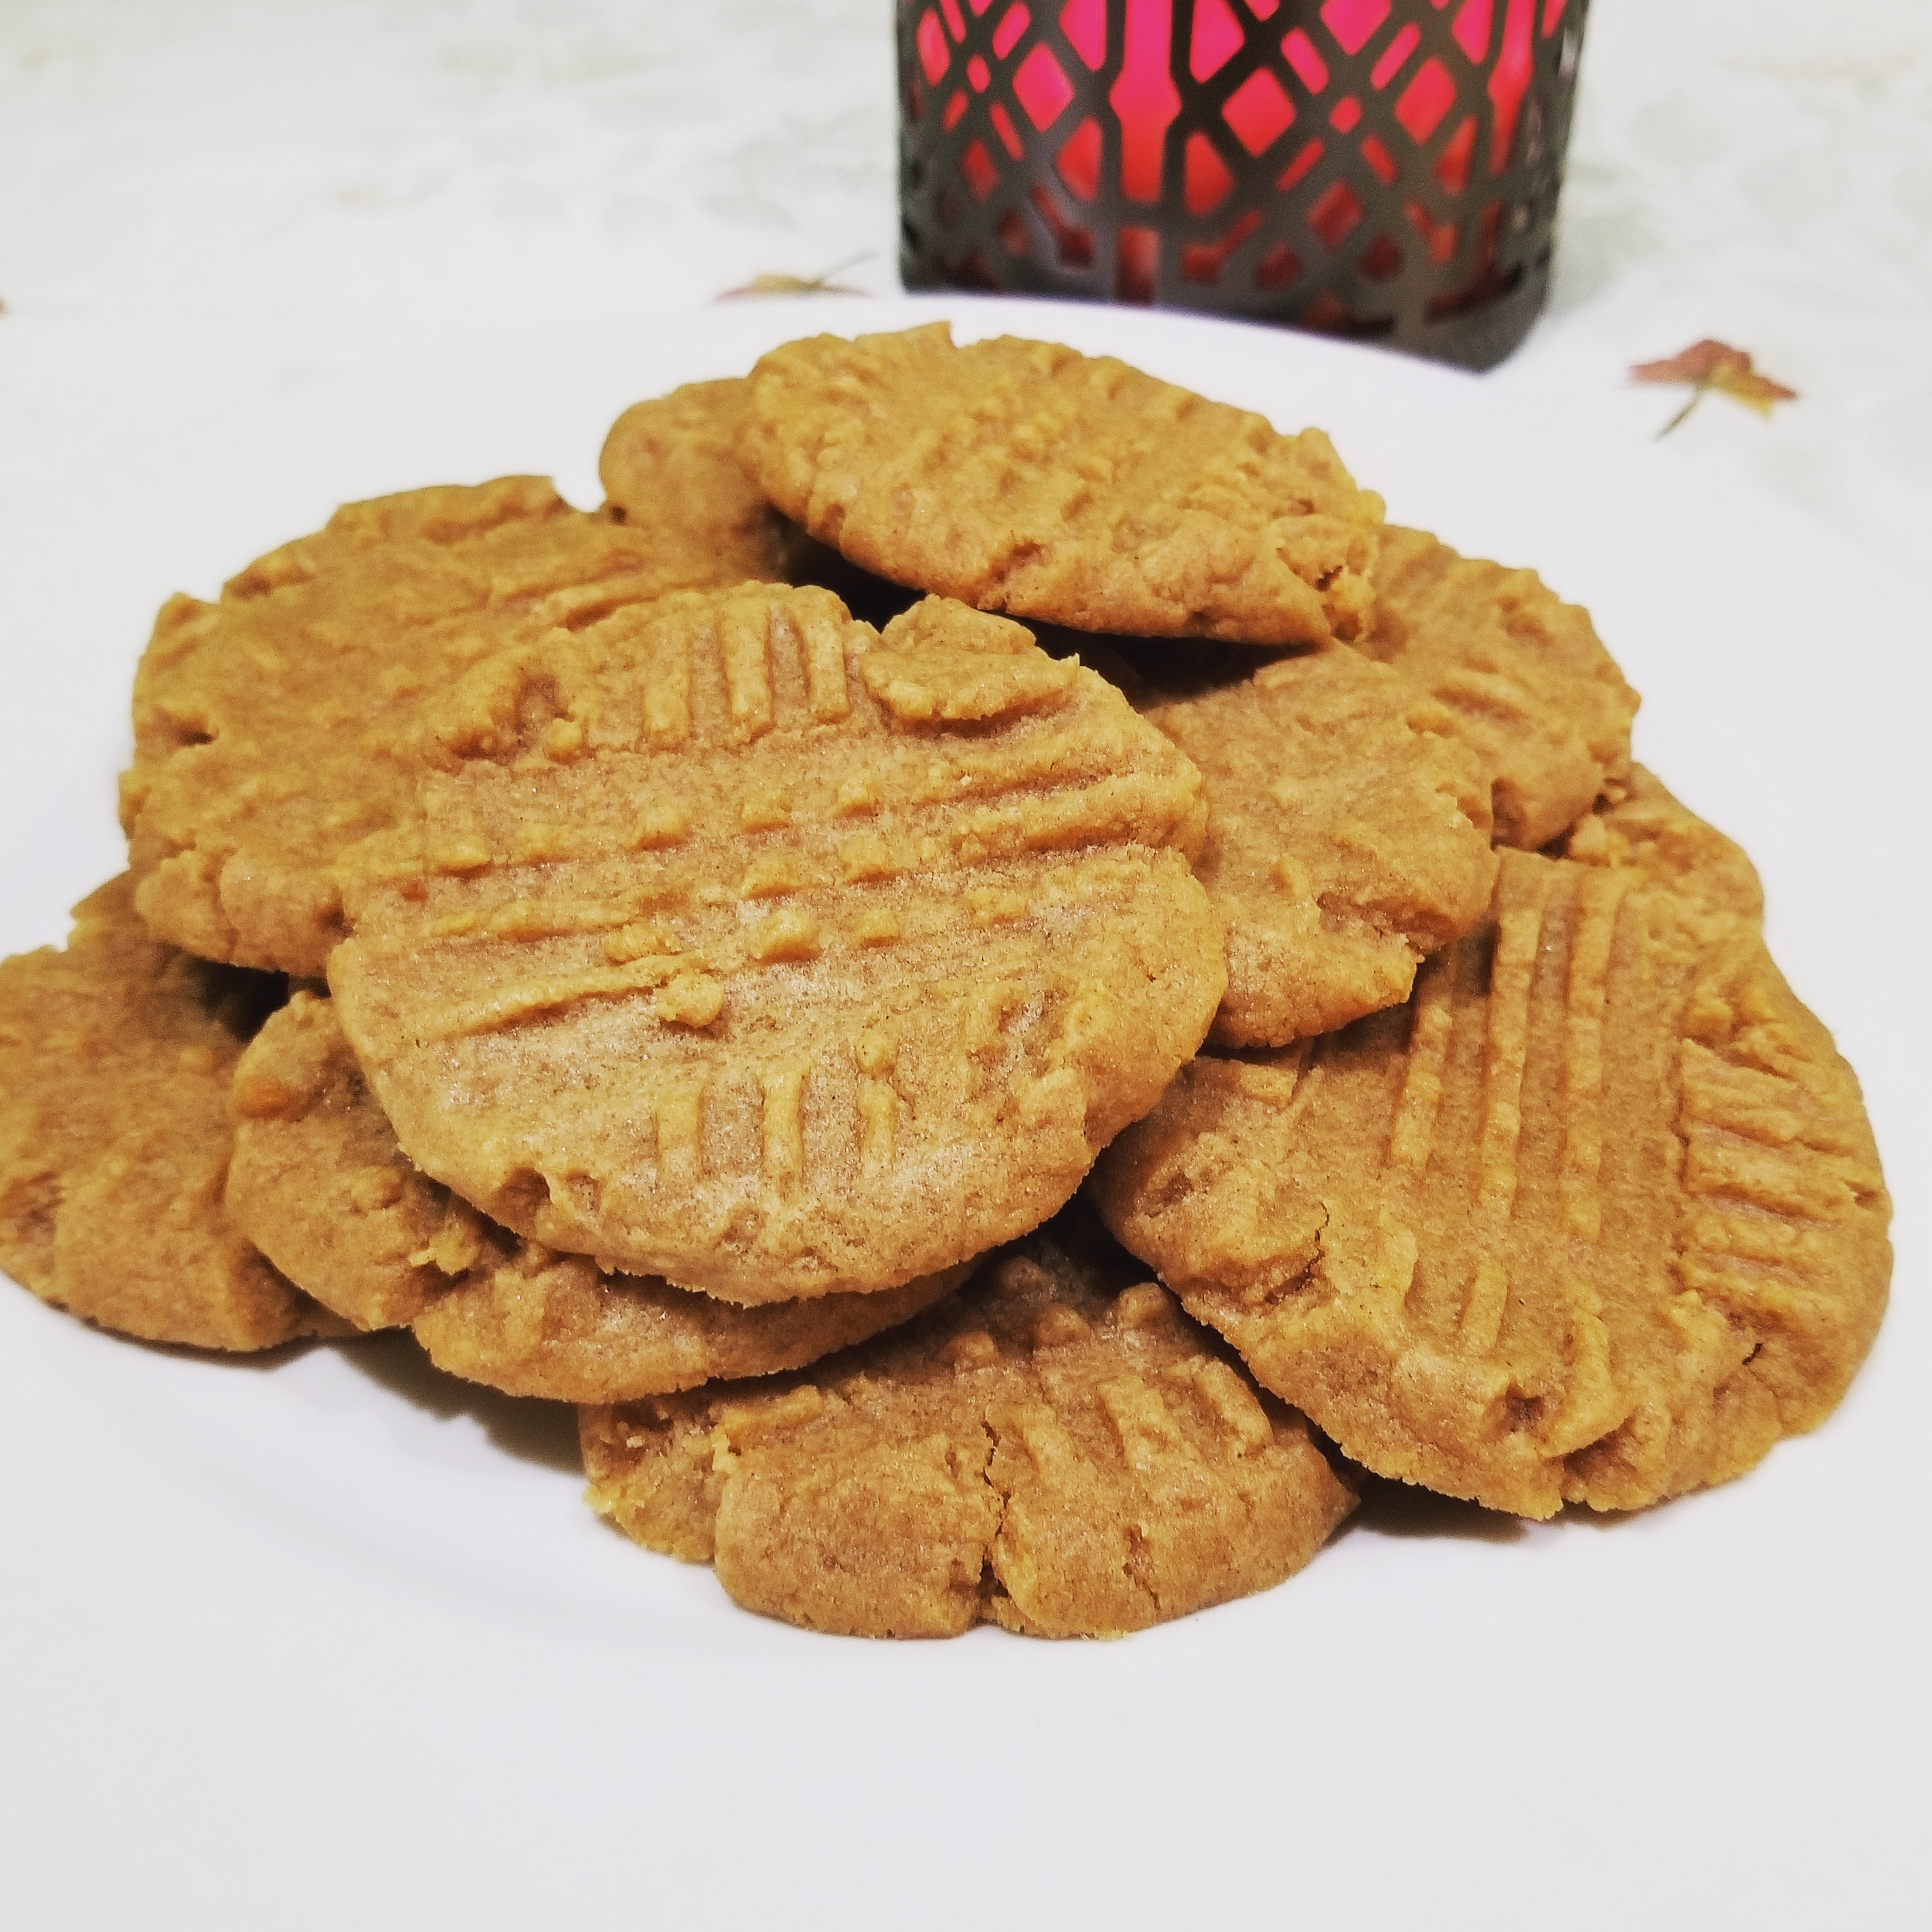 Peanut Butter Cookies from Pyure RainbowJewels